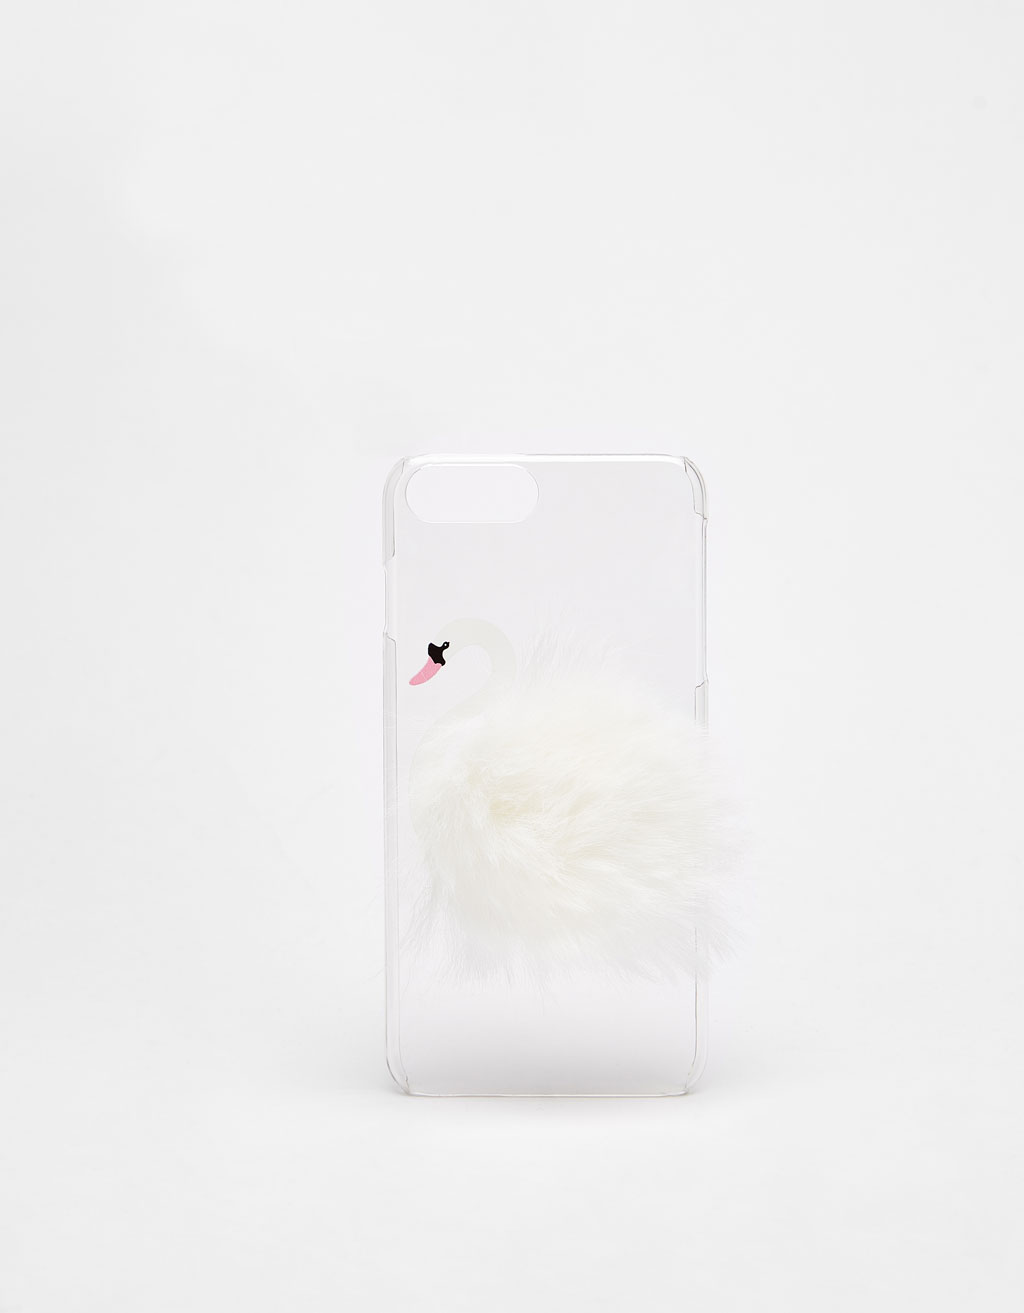 Swan-shaped iPhone 6 Plus/7 Plus/8 Plus case with pompom